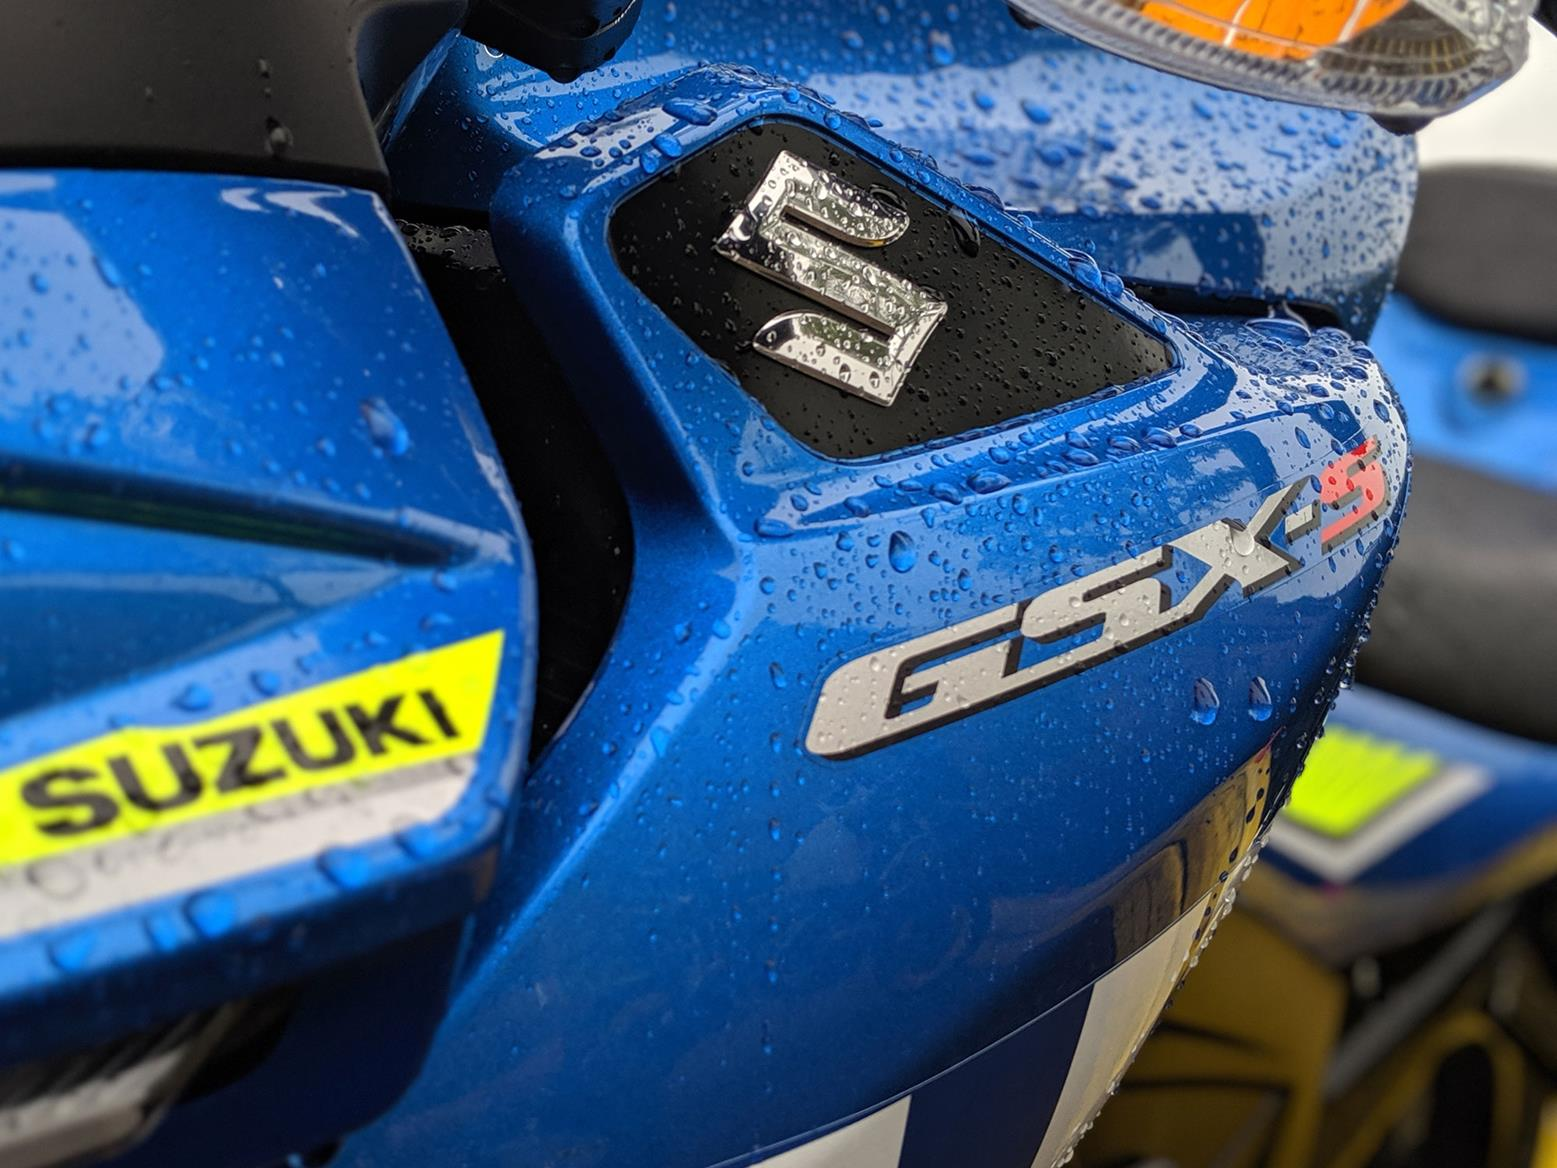 My Suzuki GSX-S125 isn't always wet - honest!